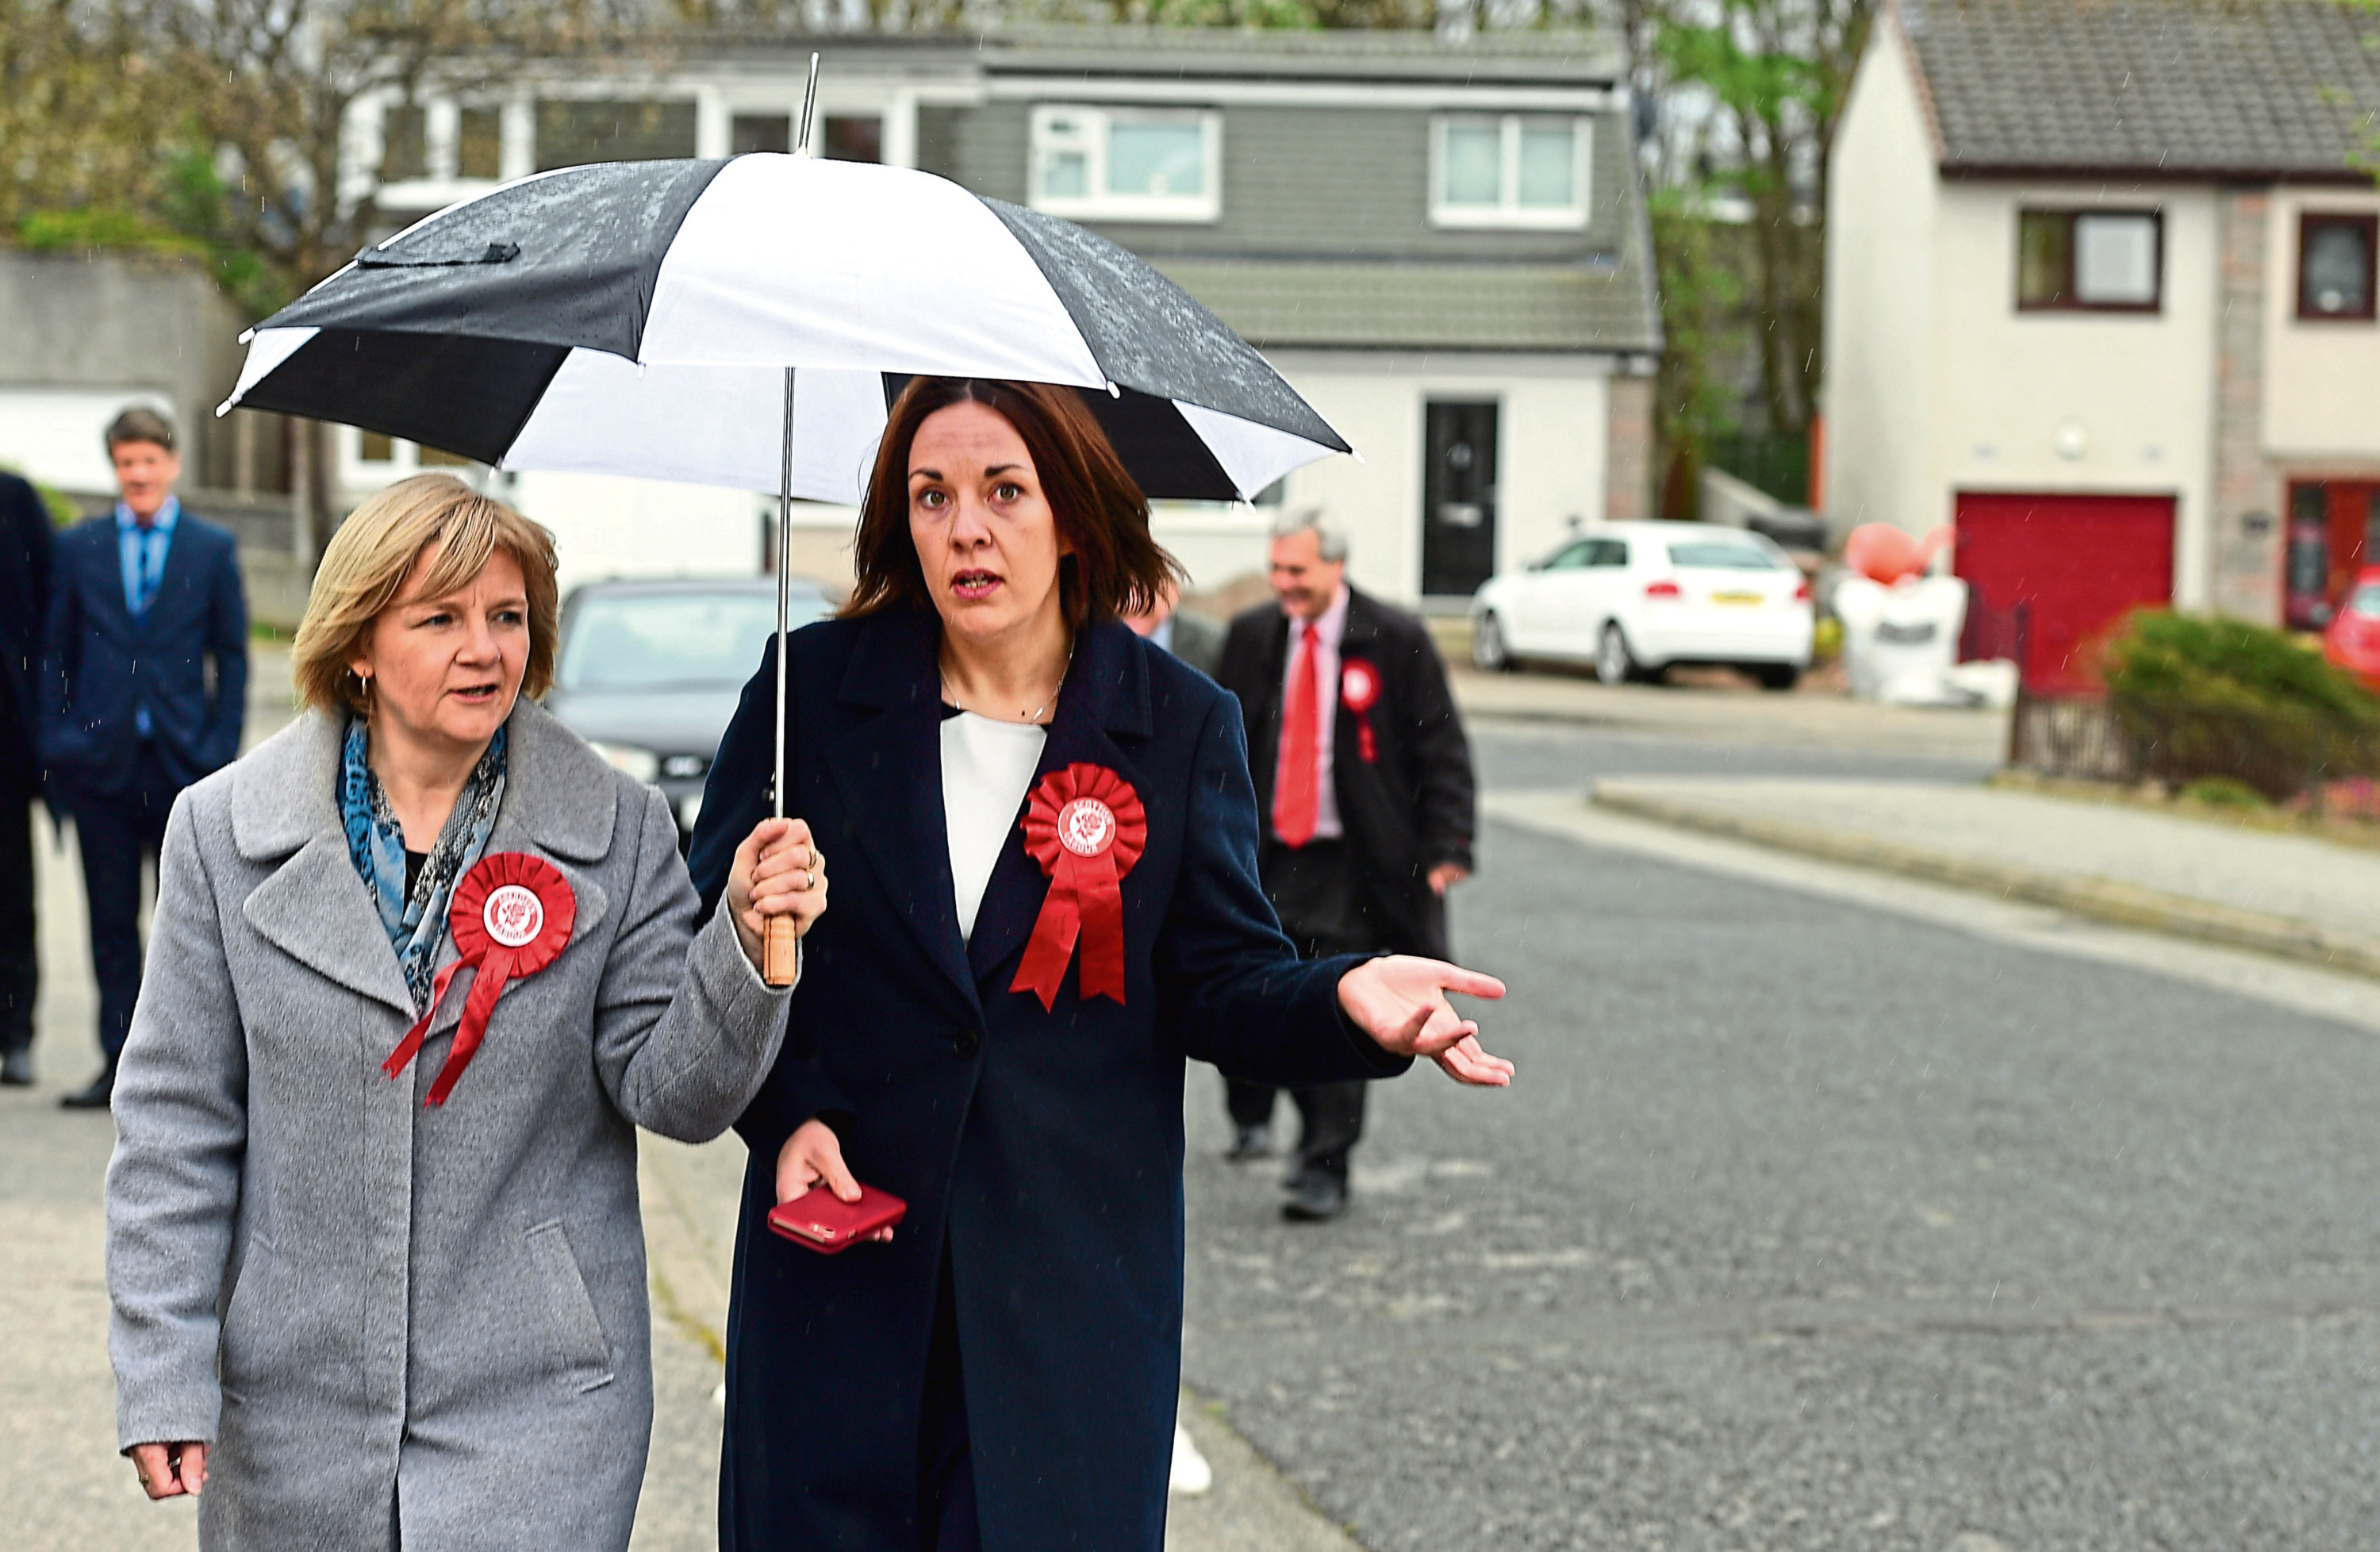 The group was suspended by Kezia Dugdale in May last year